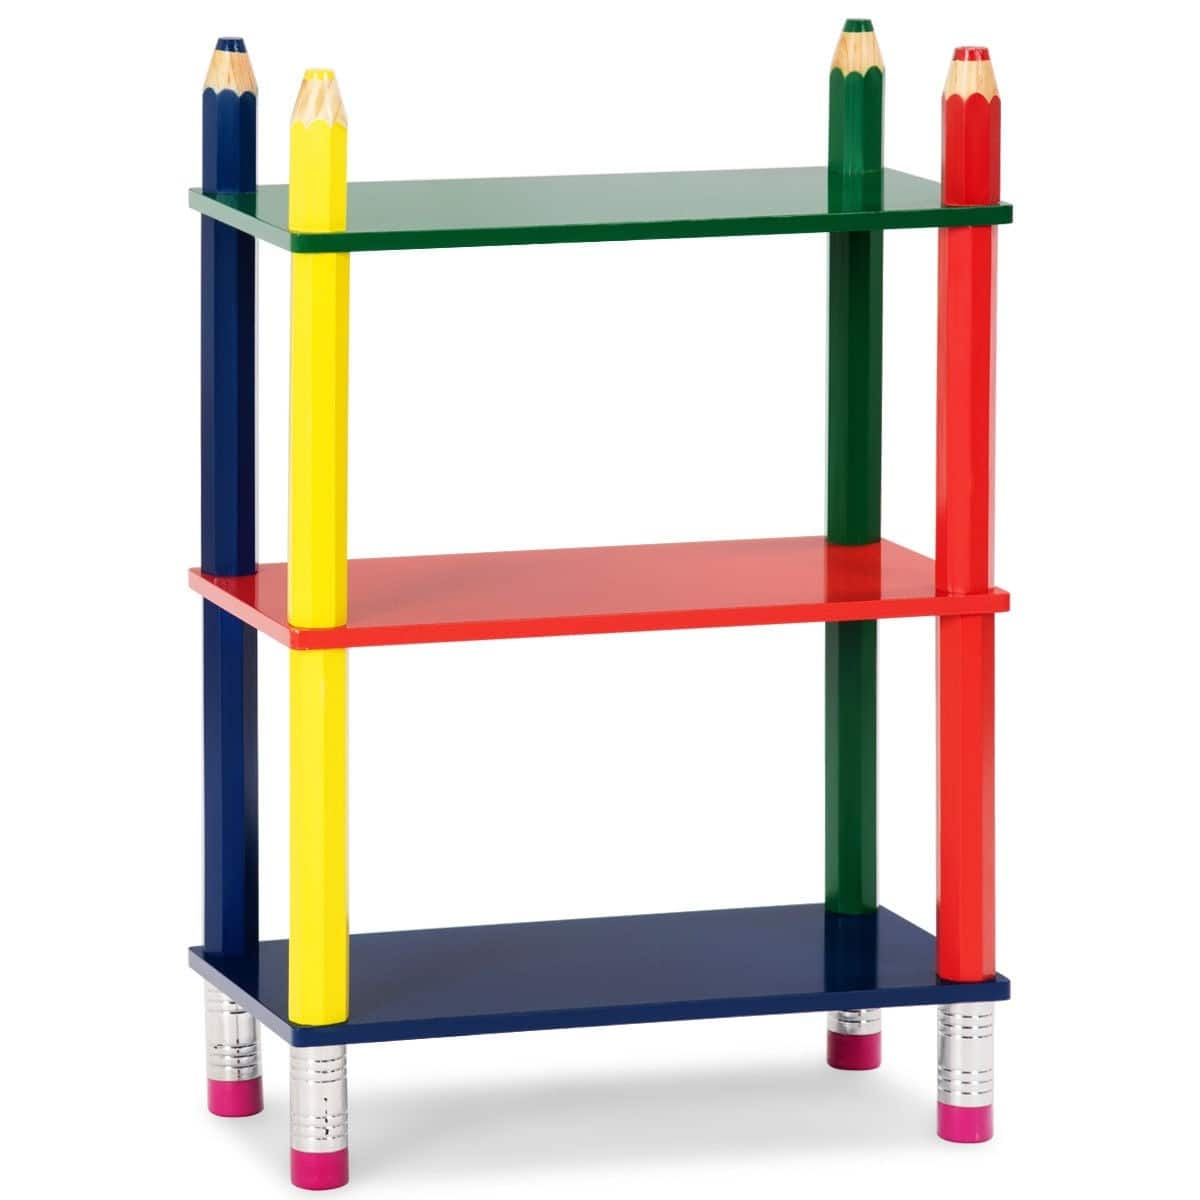 Costway 3 Tiers Kids Bookshelf Crayon Themed Shelves Storage Bookcase 2695 Free Shipping